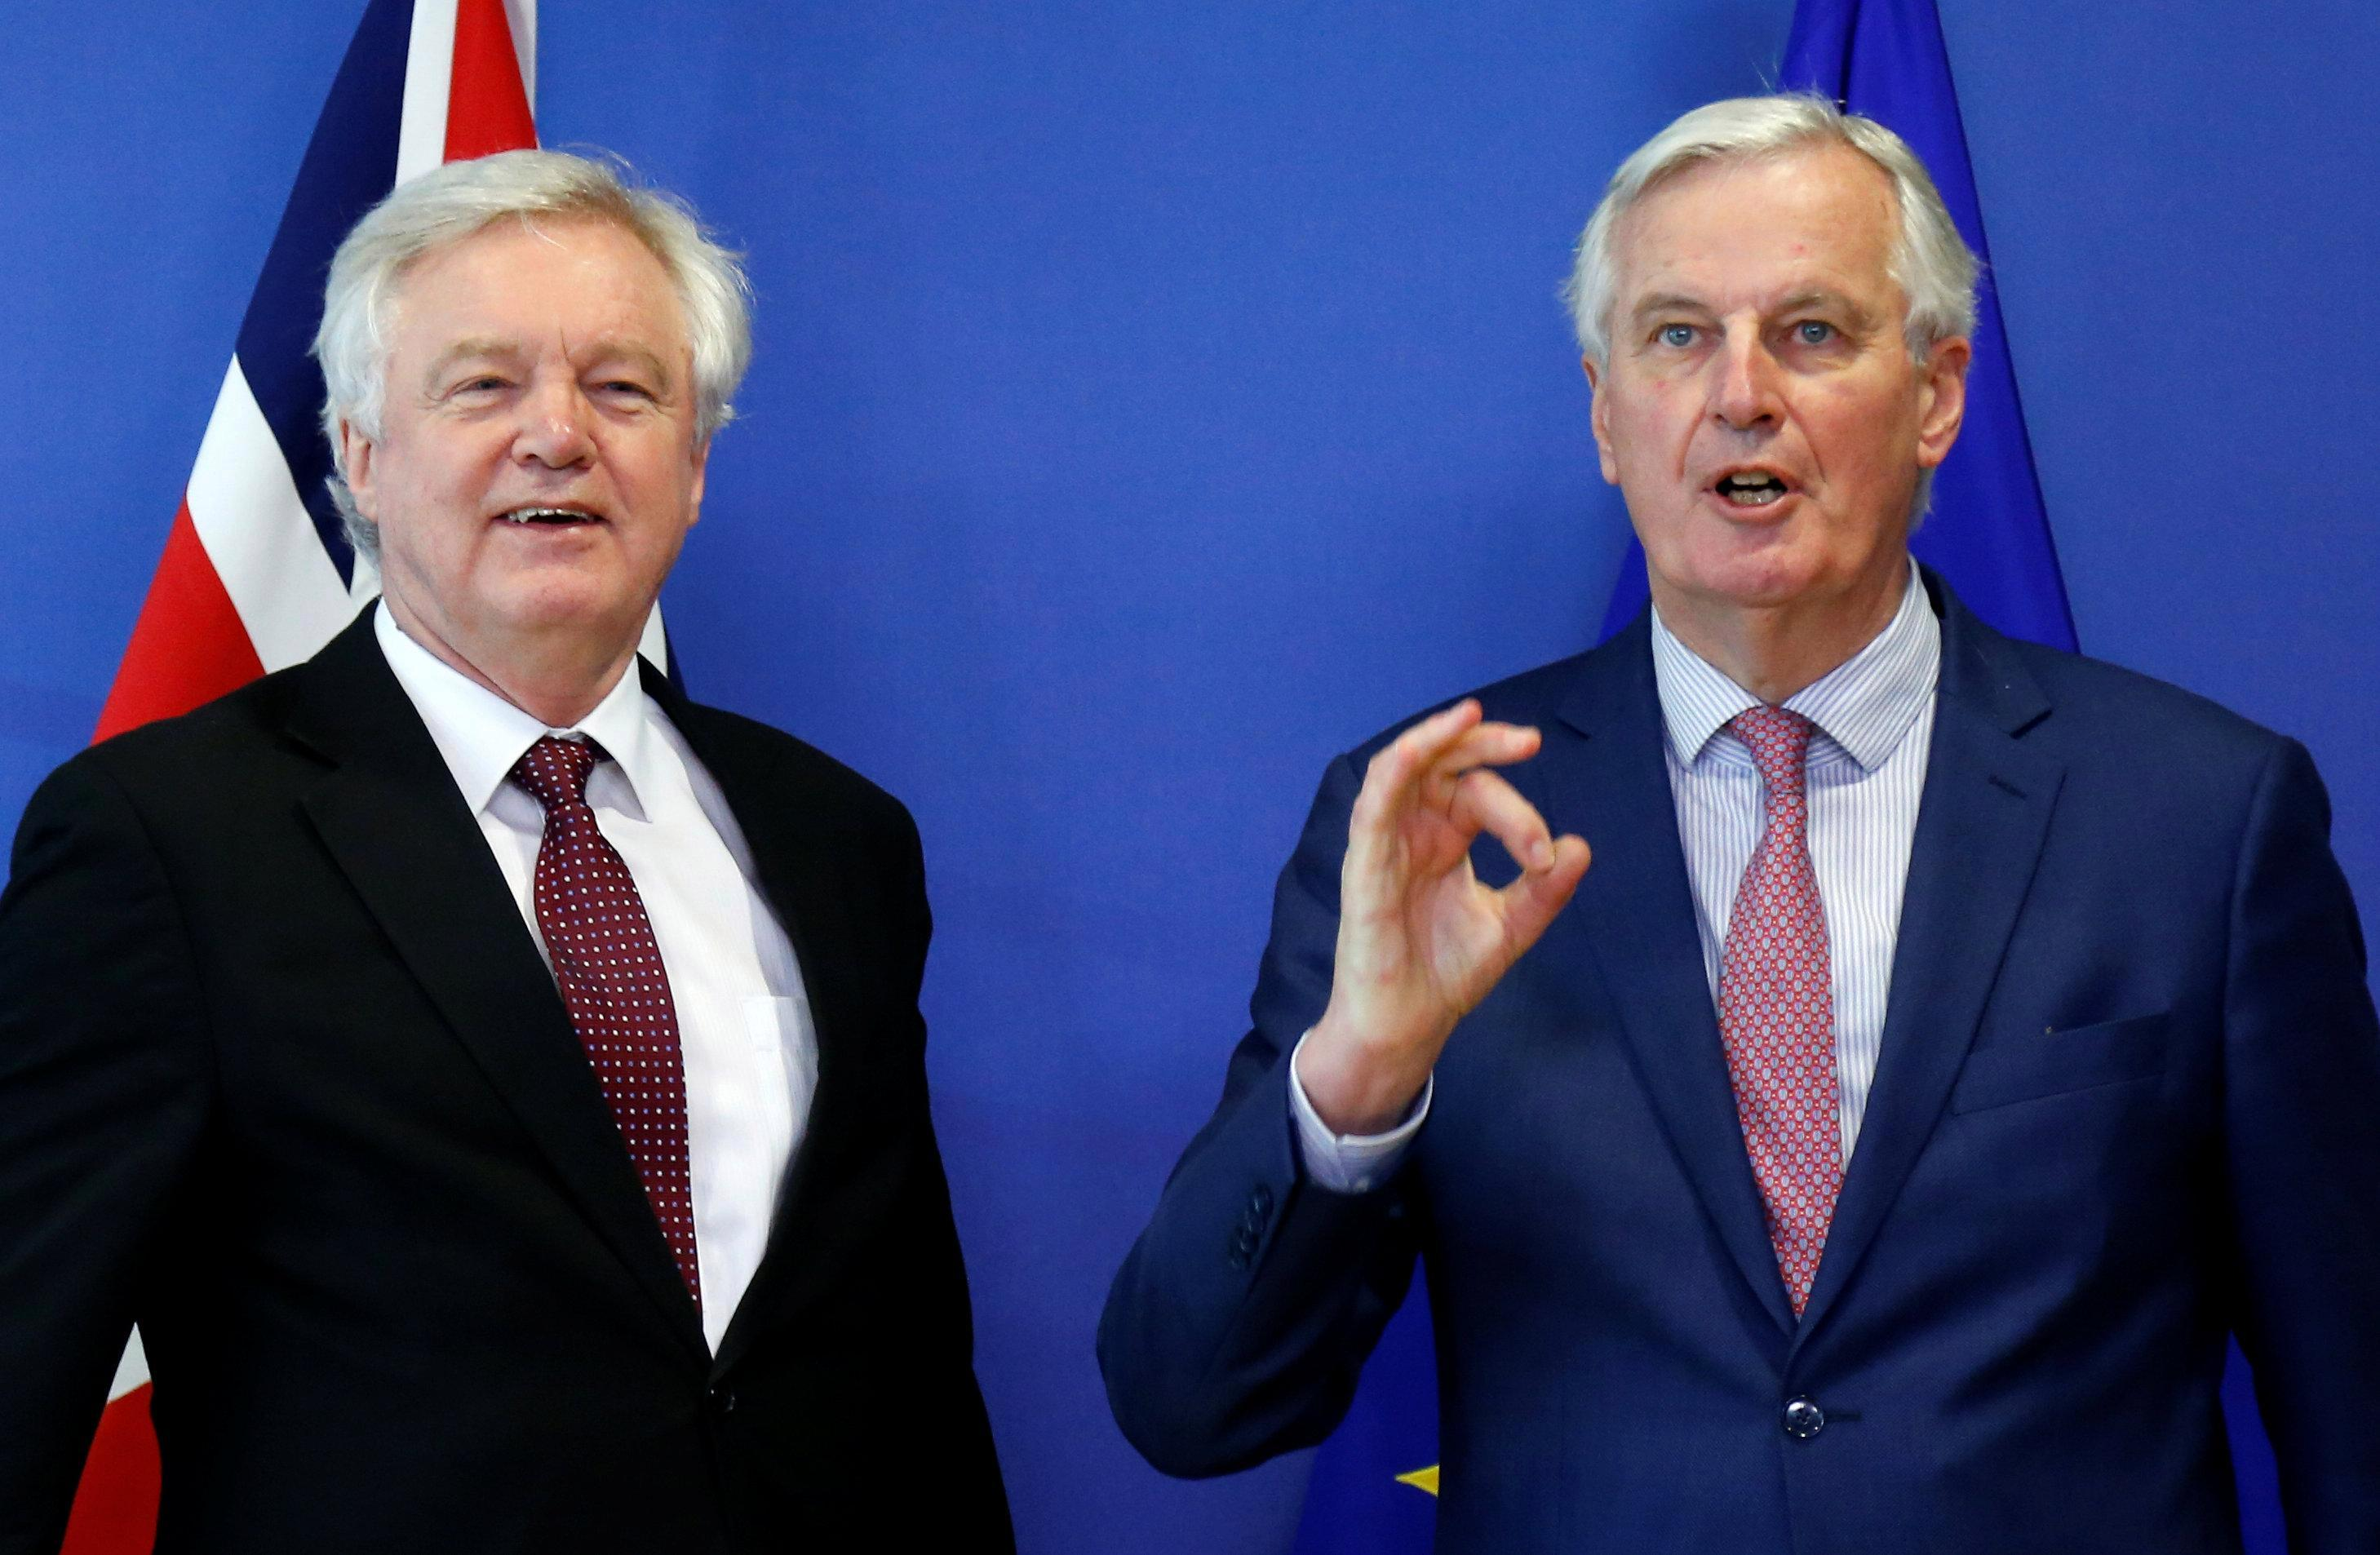 Michel Barnier confirms UK will exit EU for good on New Year's Eve 2020 after transition deal agreed in Brussels – but Irish border issue still not solved